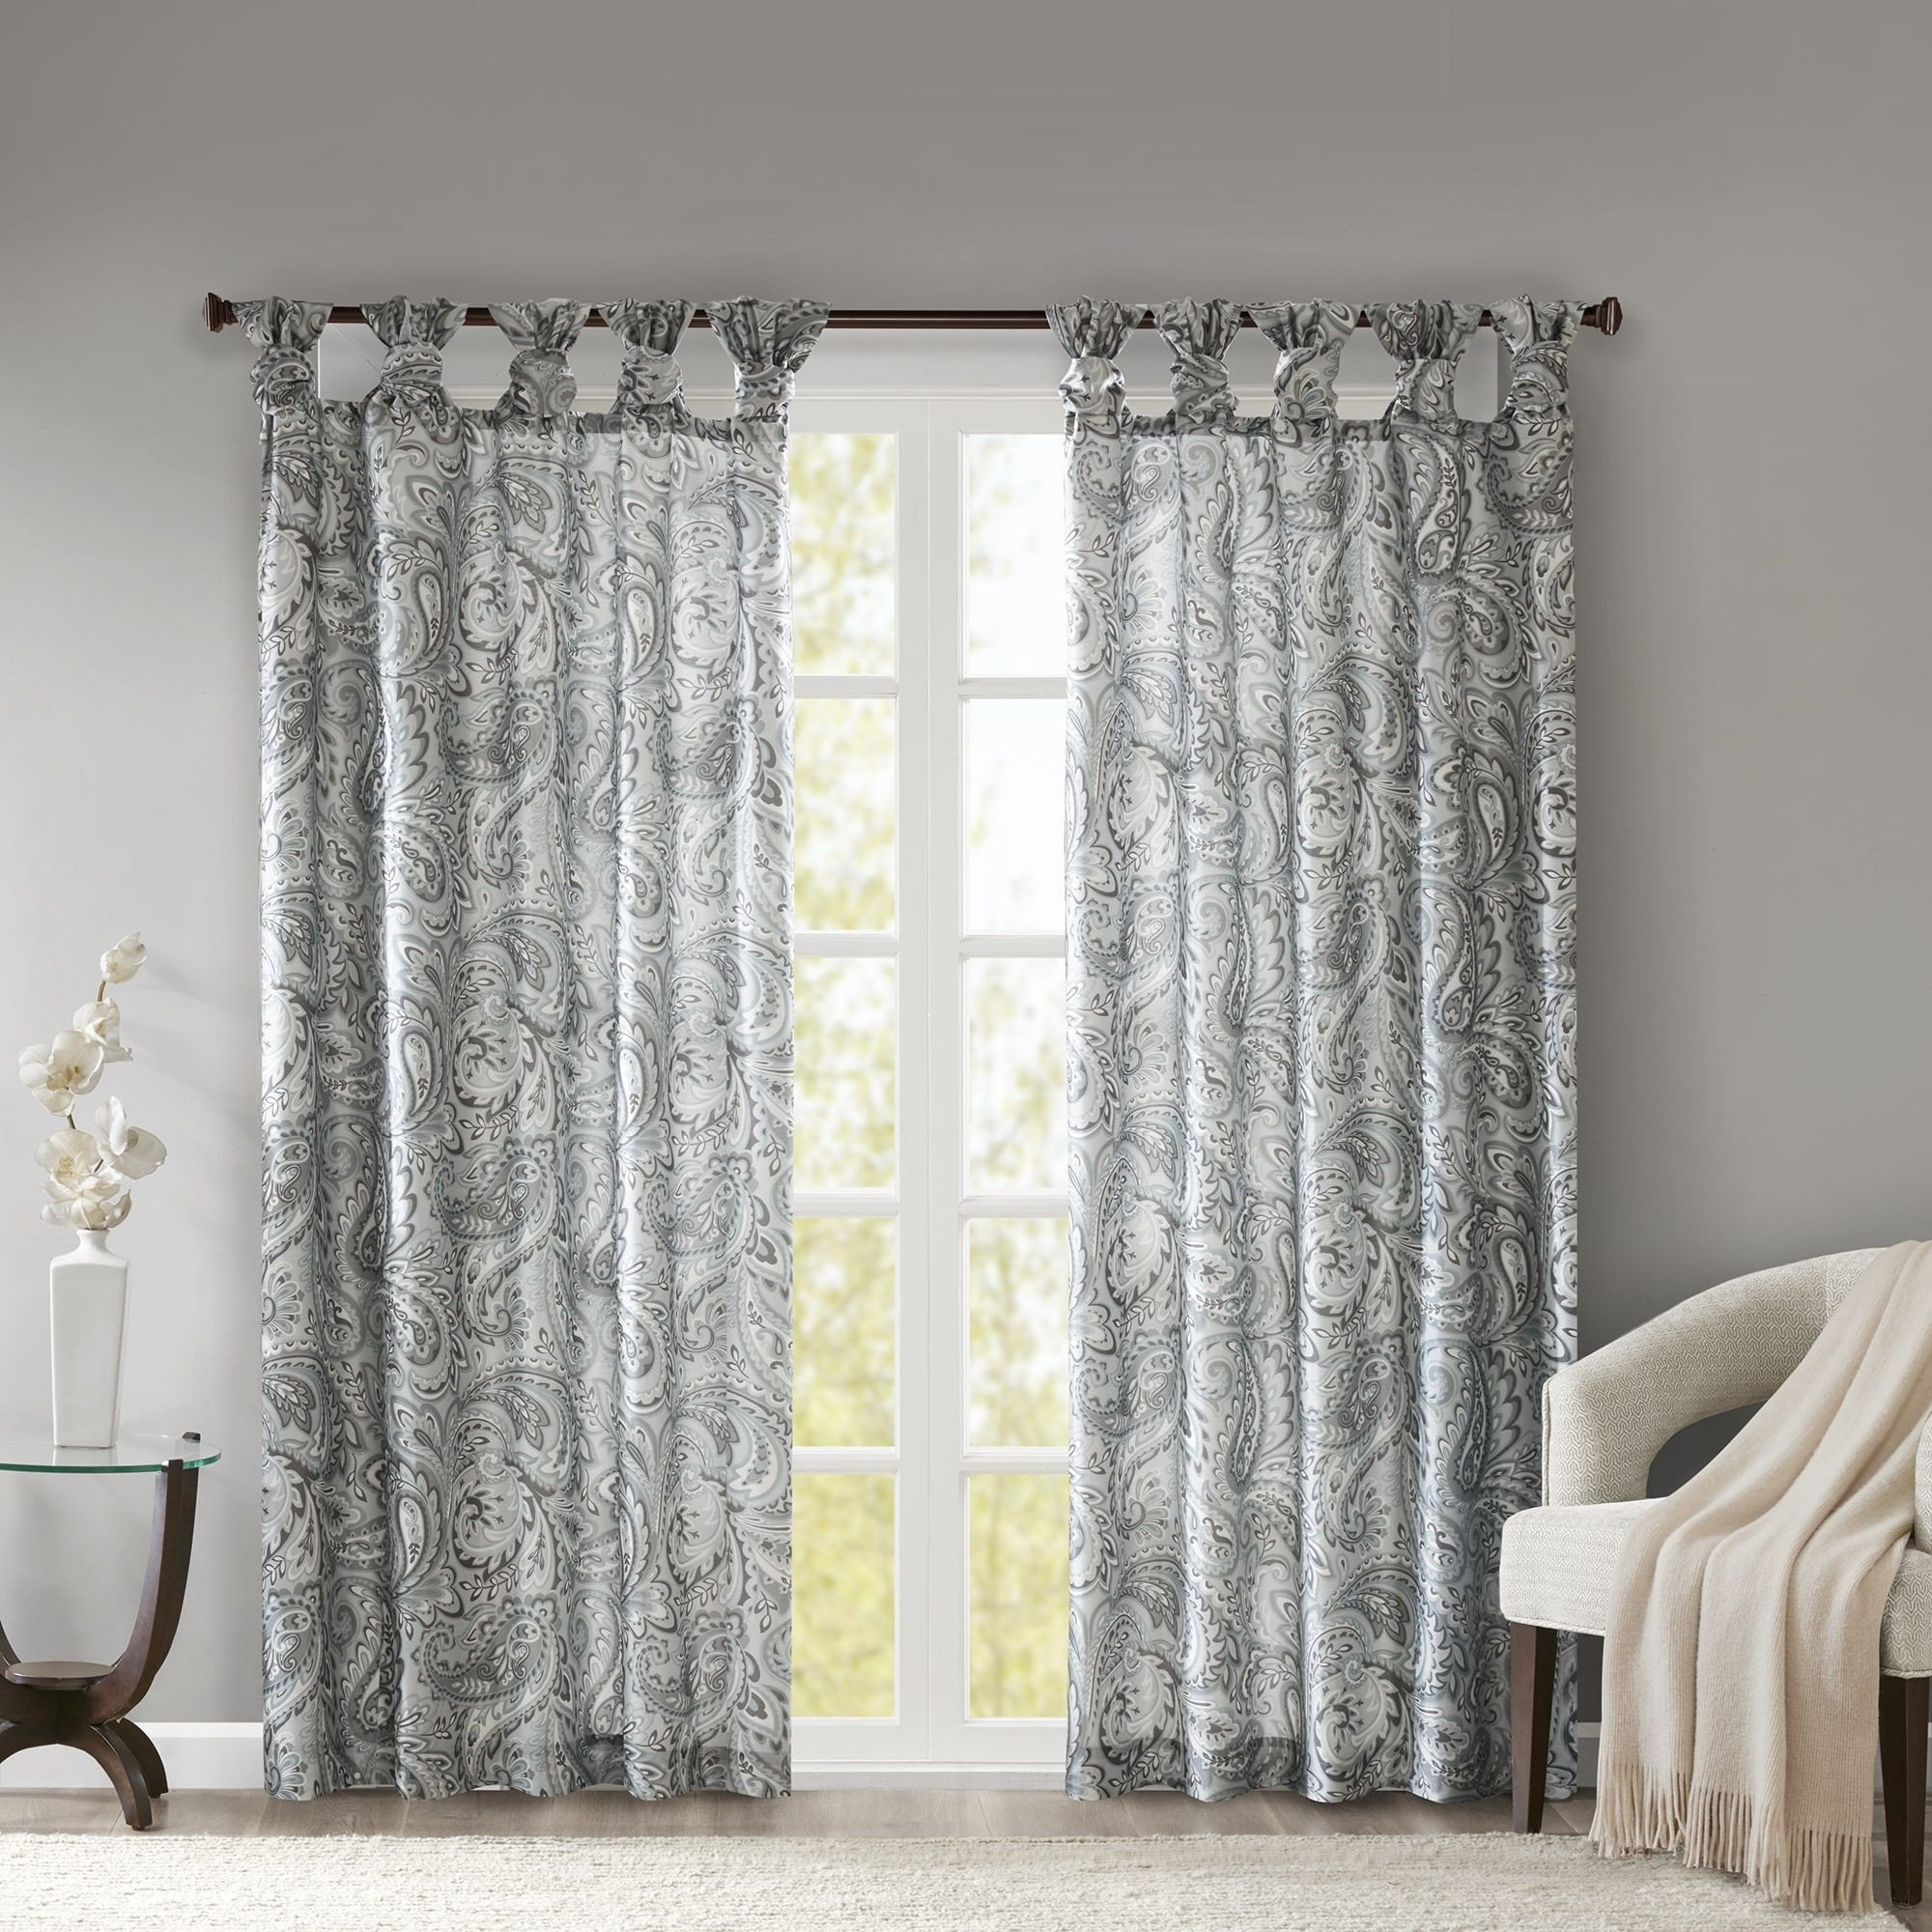 Curtains for Bedroom Windows Lovely Madison Park Rosalie Twist Tab Paisley Printed Curtain Panel